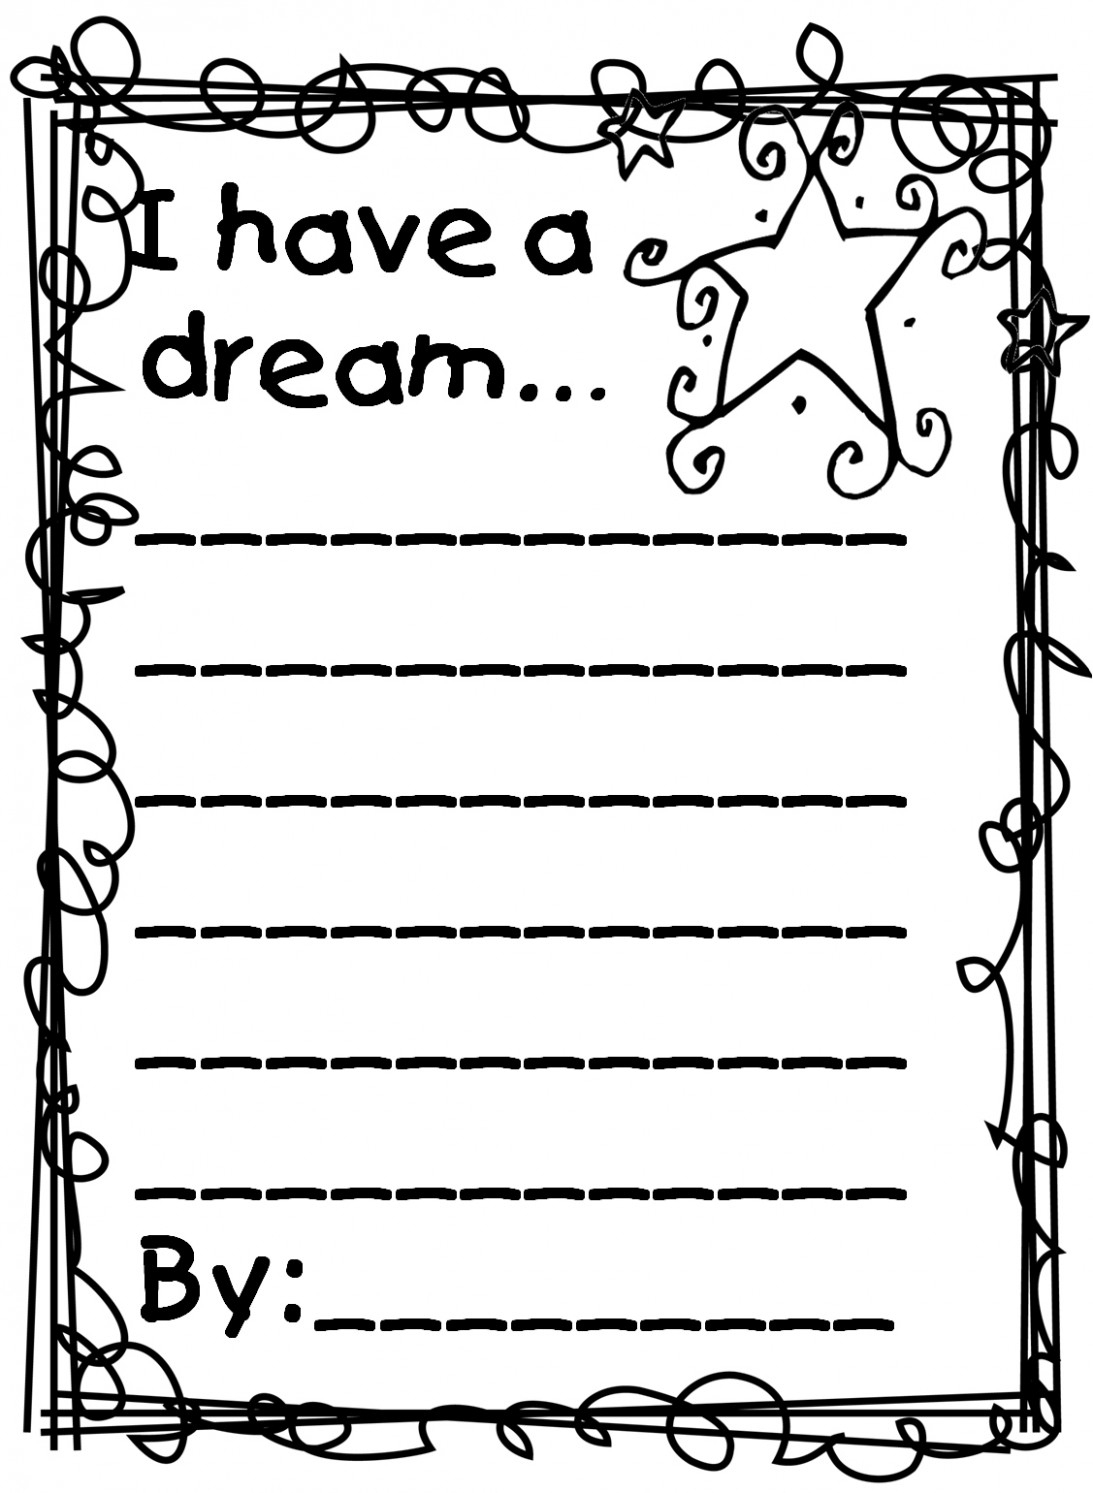 Coloring Pages : Martin Luther King Jrng Pages Printable Get This - Free Printable Martin Luther King Jr Worksheets